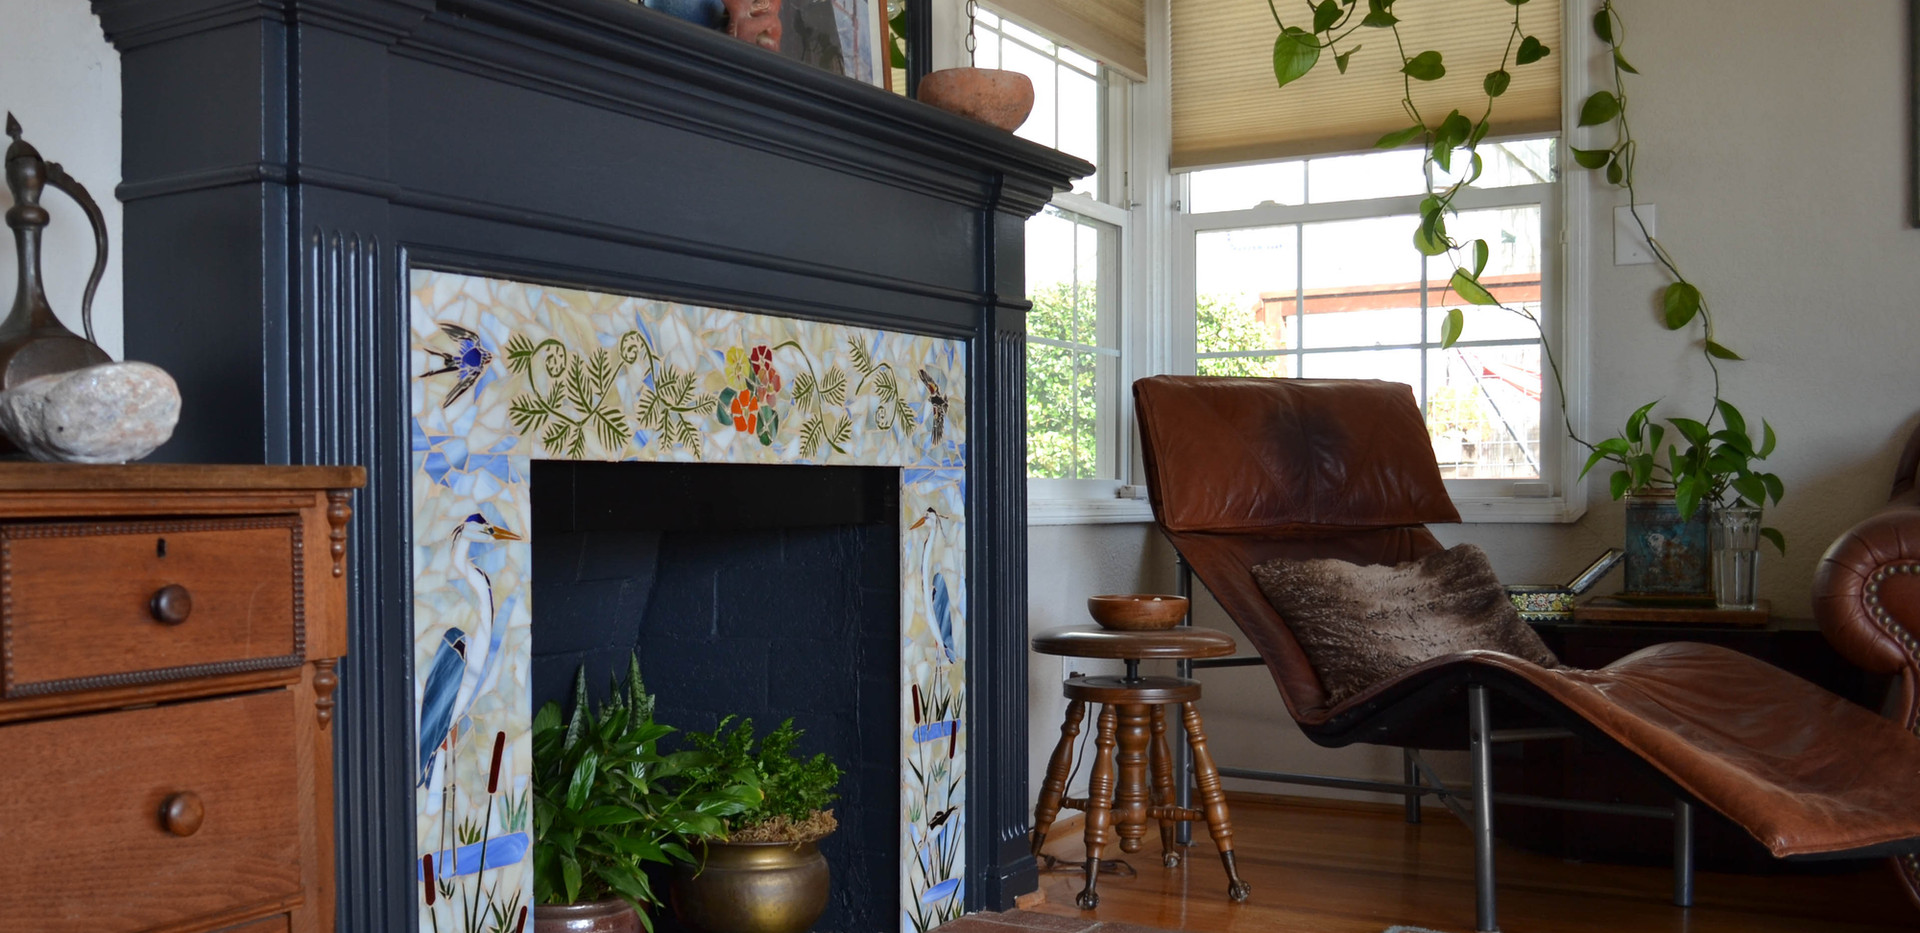 Another view of fireplace